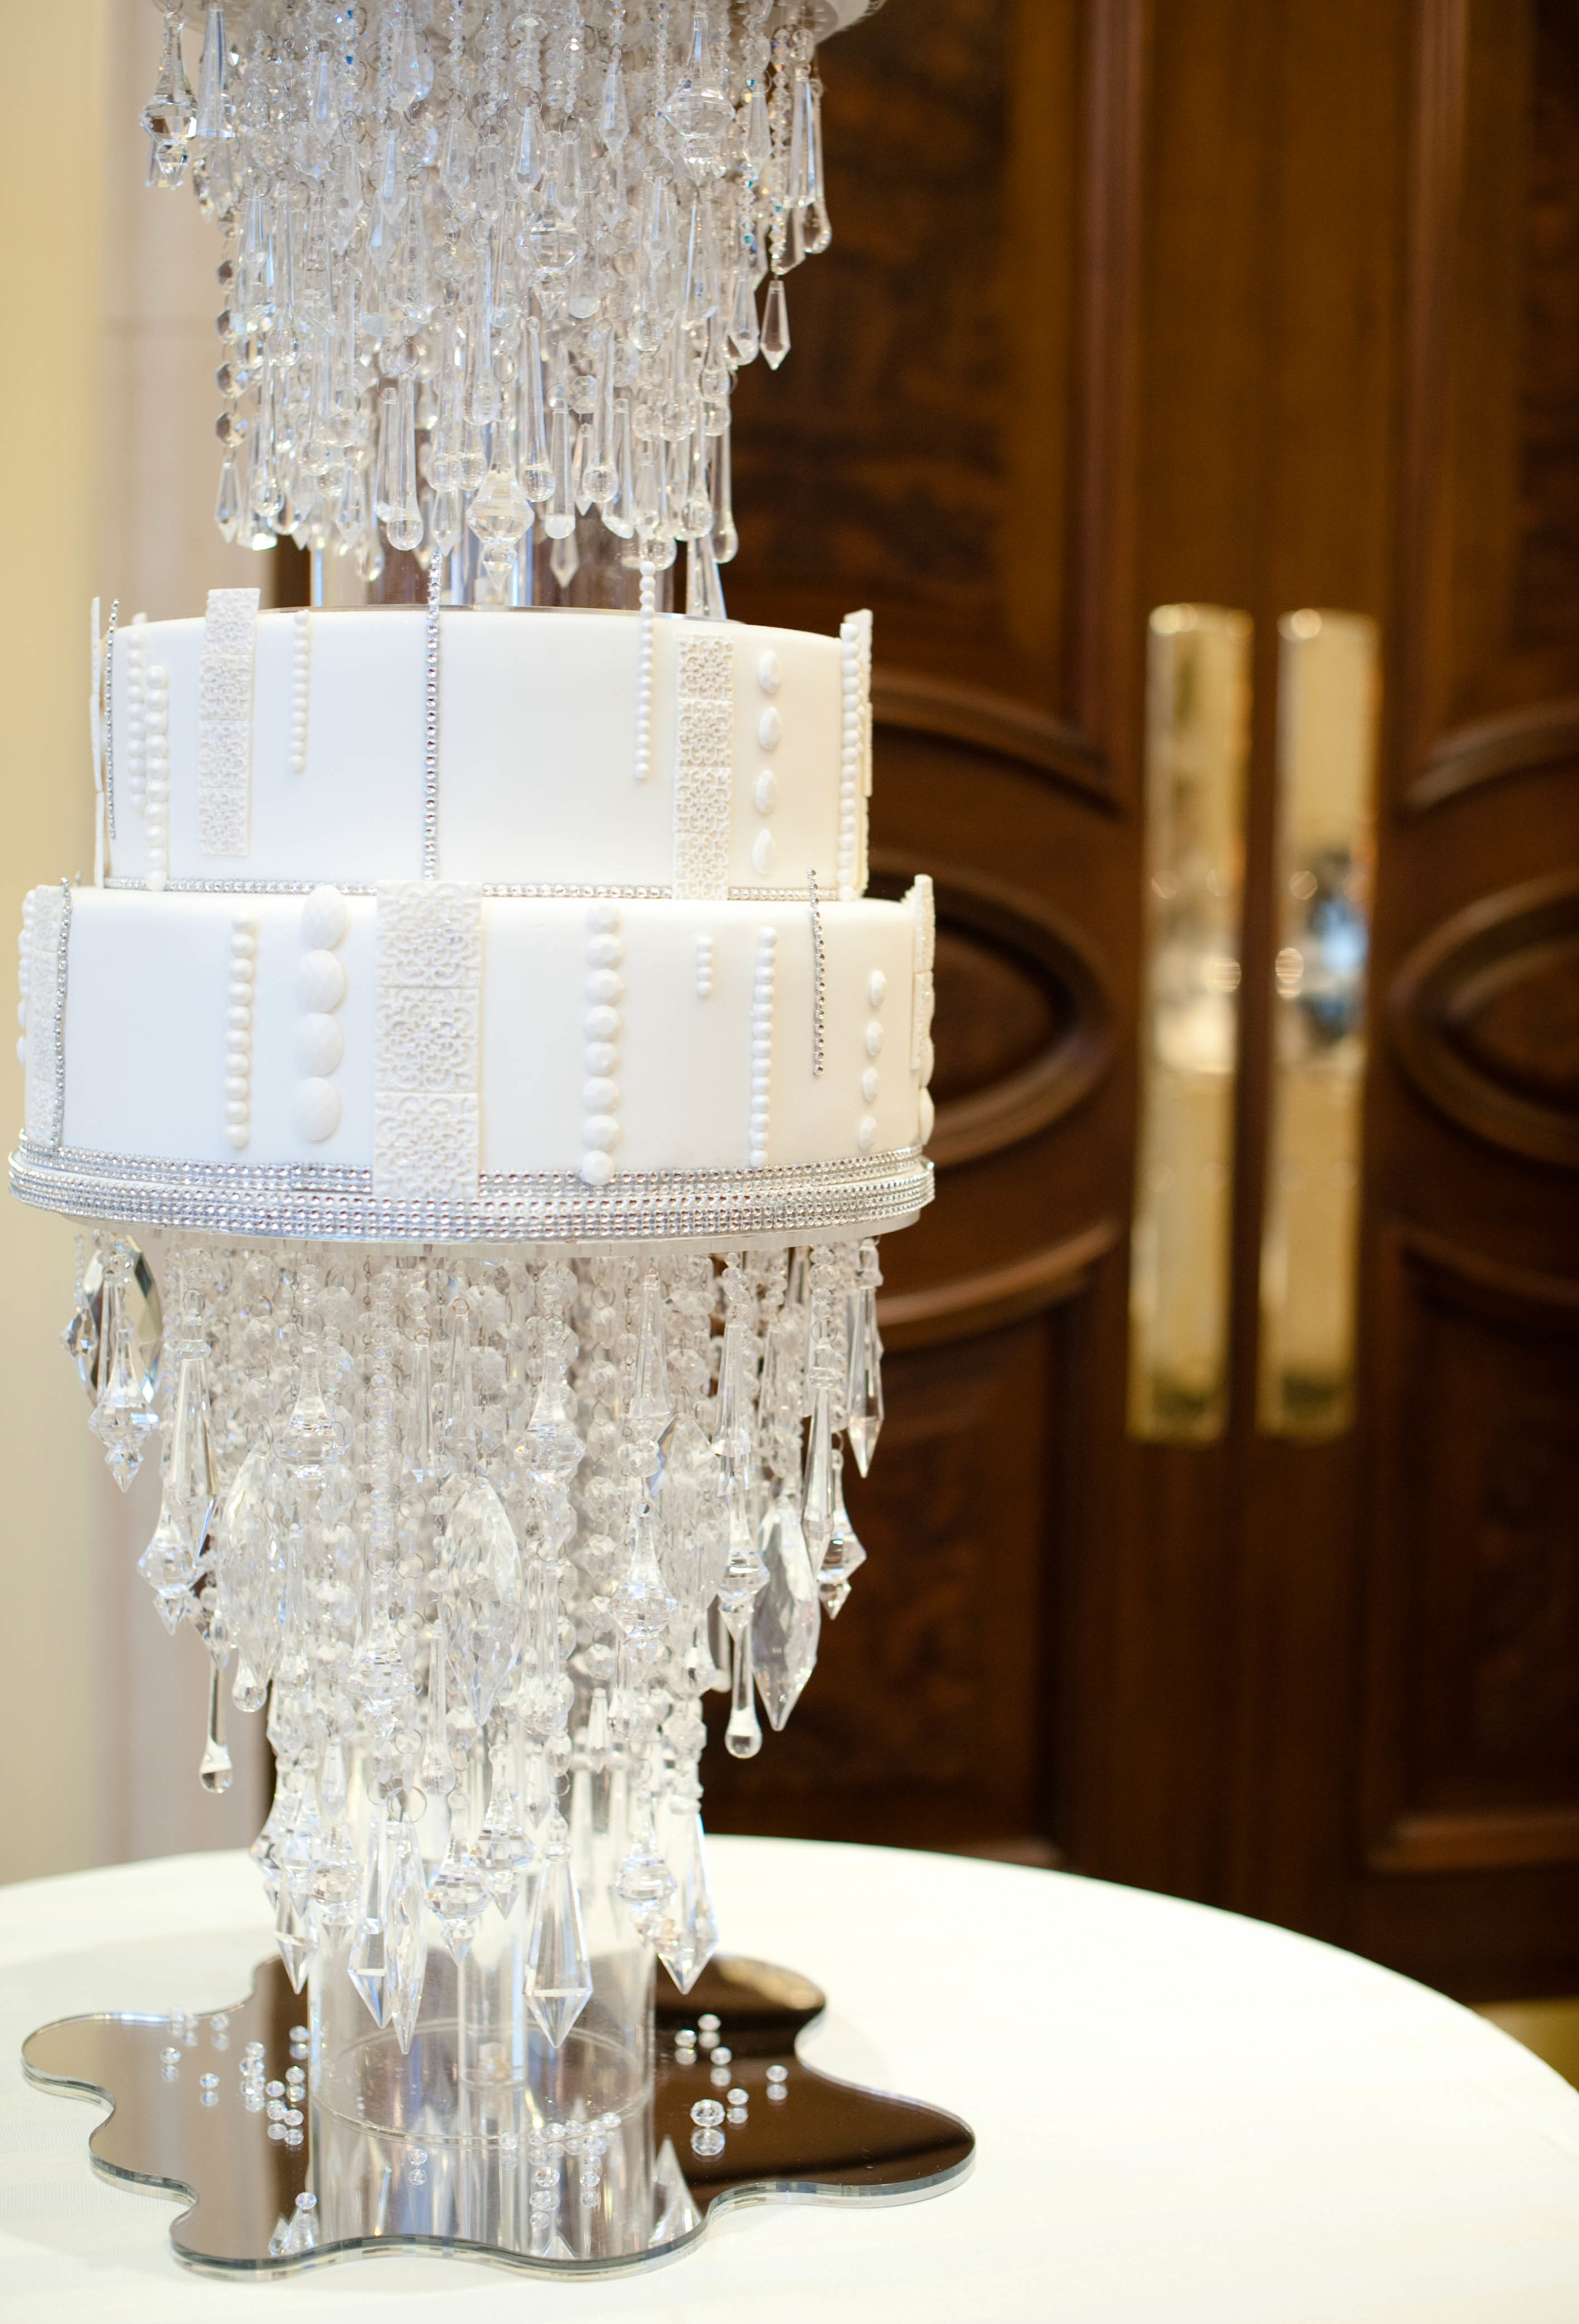 Wedding Cakes With Crystals  Cake Heaven Elizabeth s Cake Emporium The Inspired